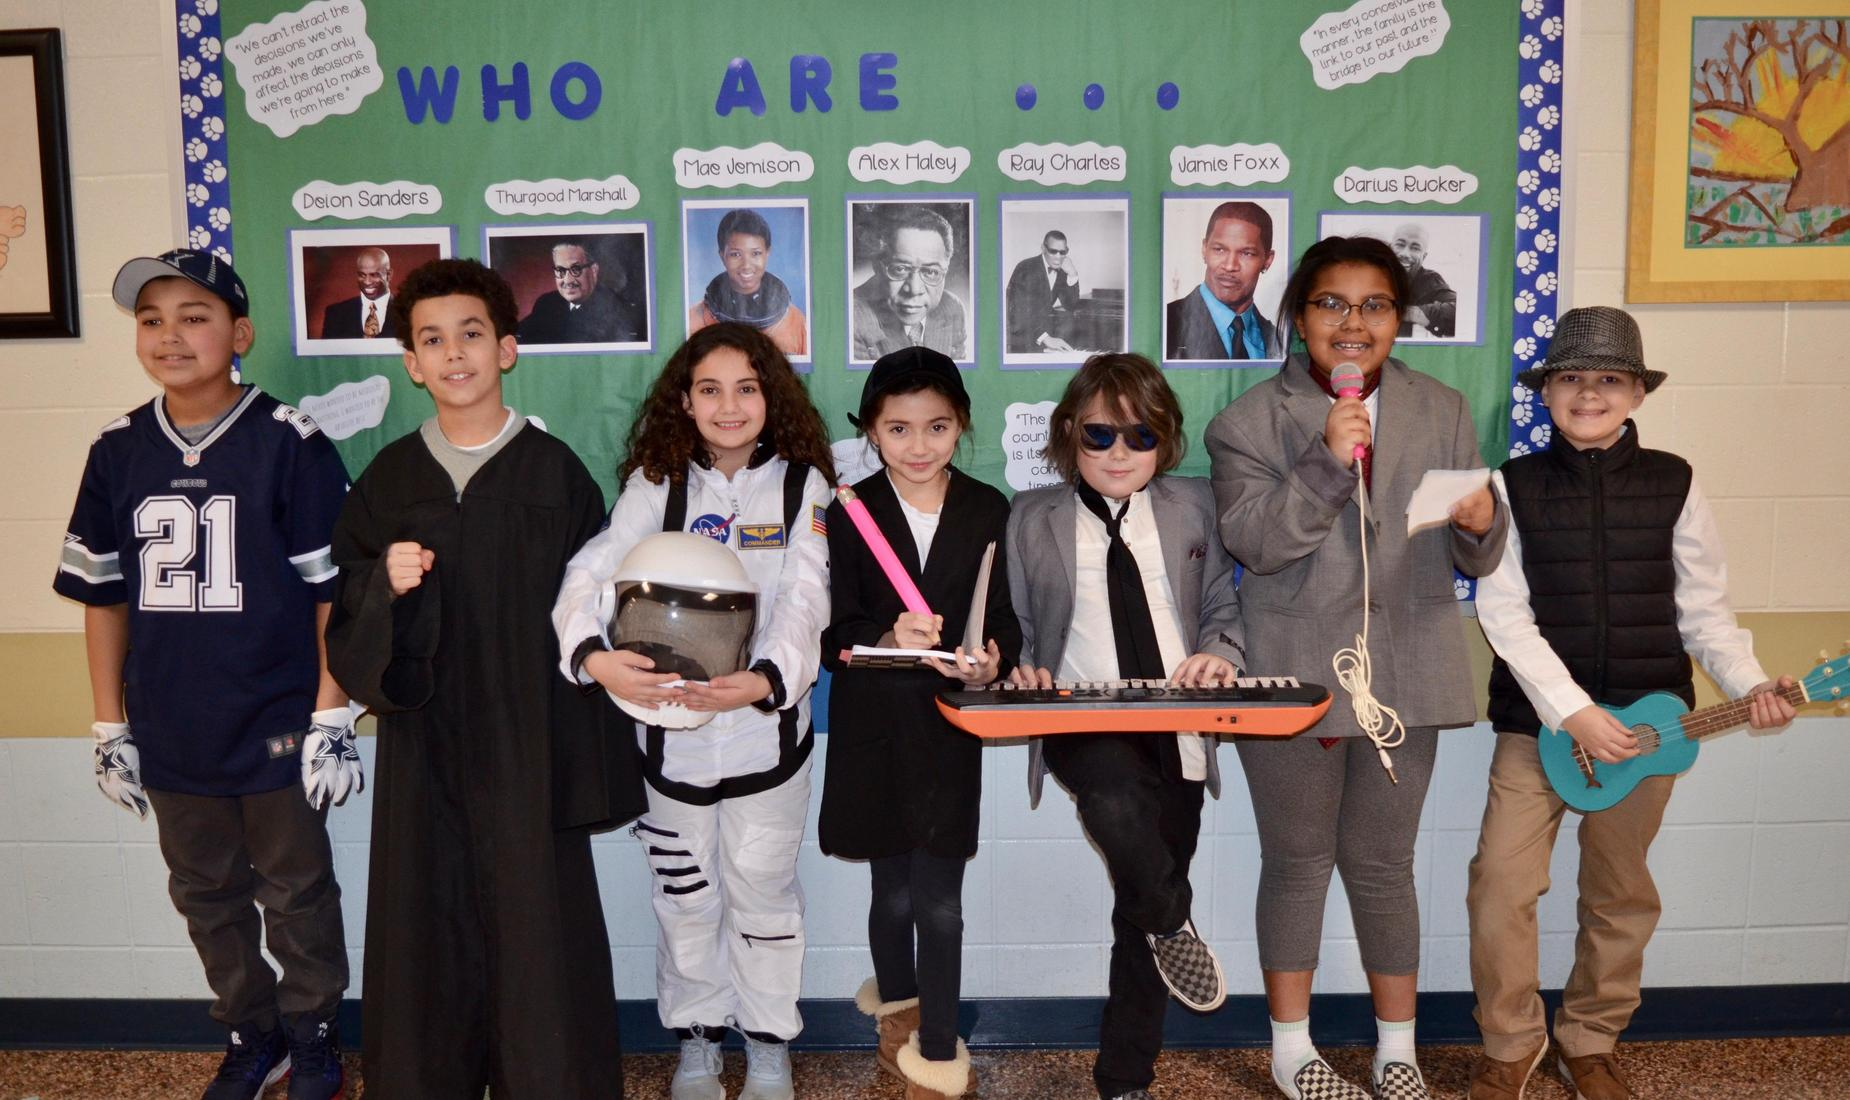 7 elementary students dressed as famous African American, baseball player, astronaut, musician